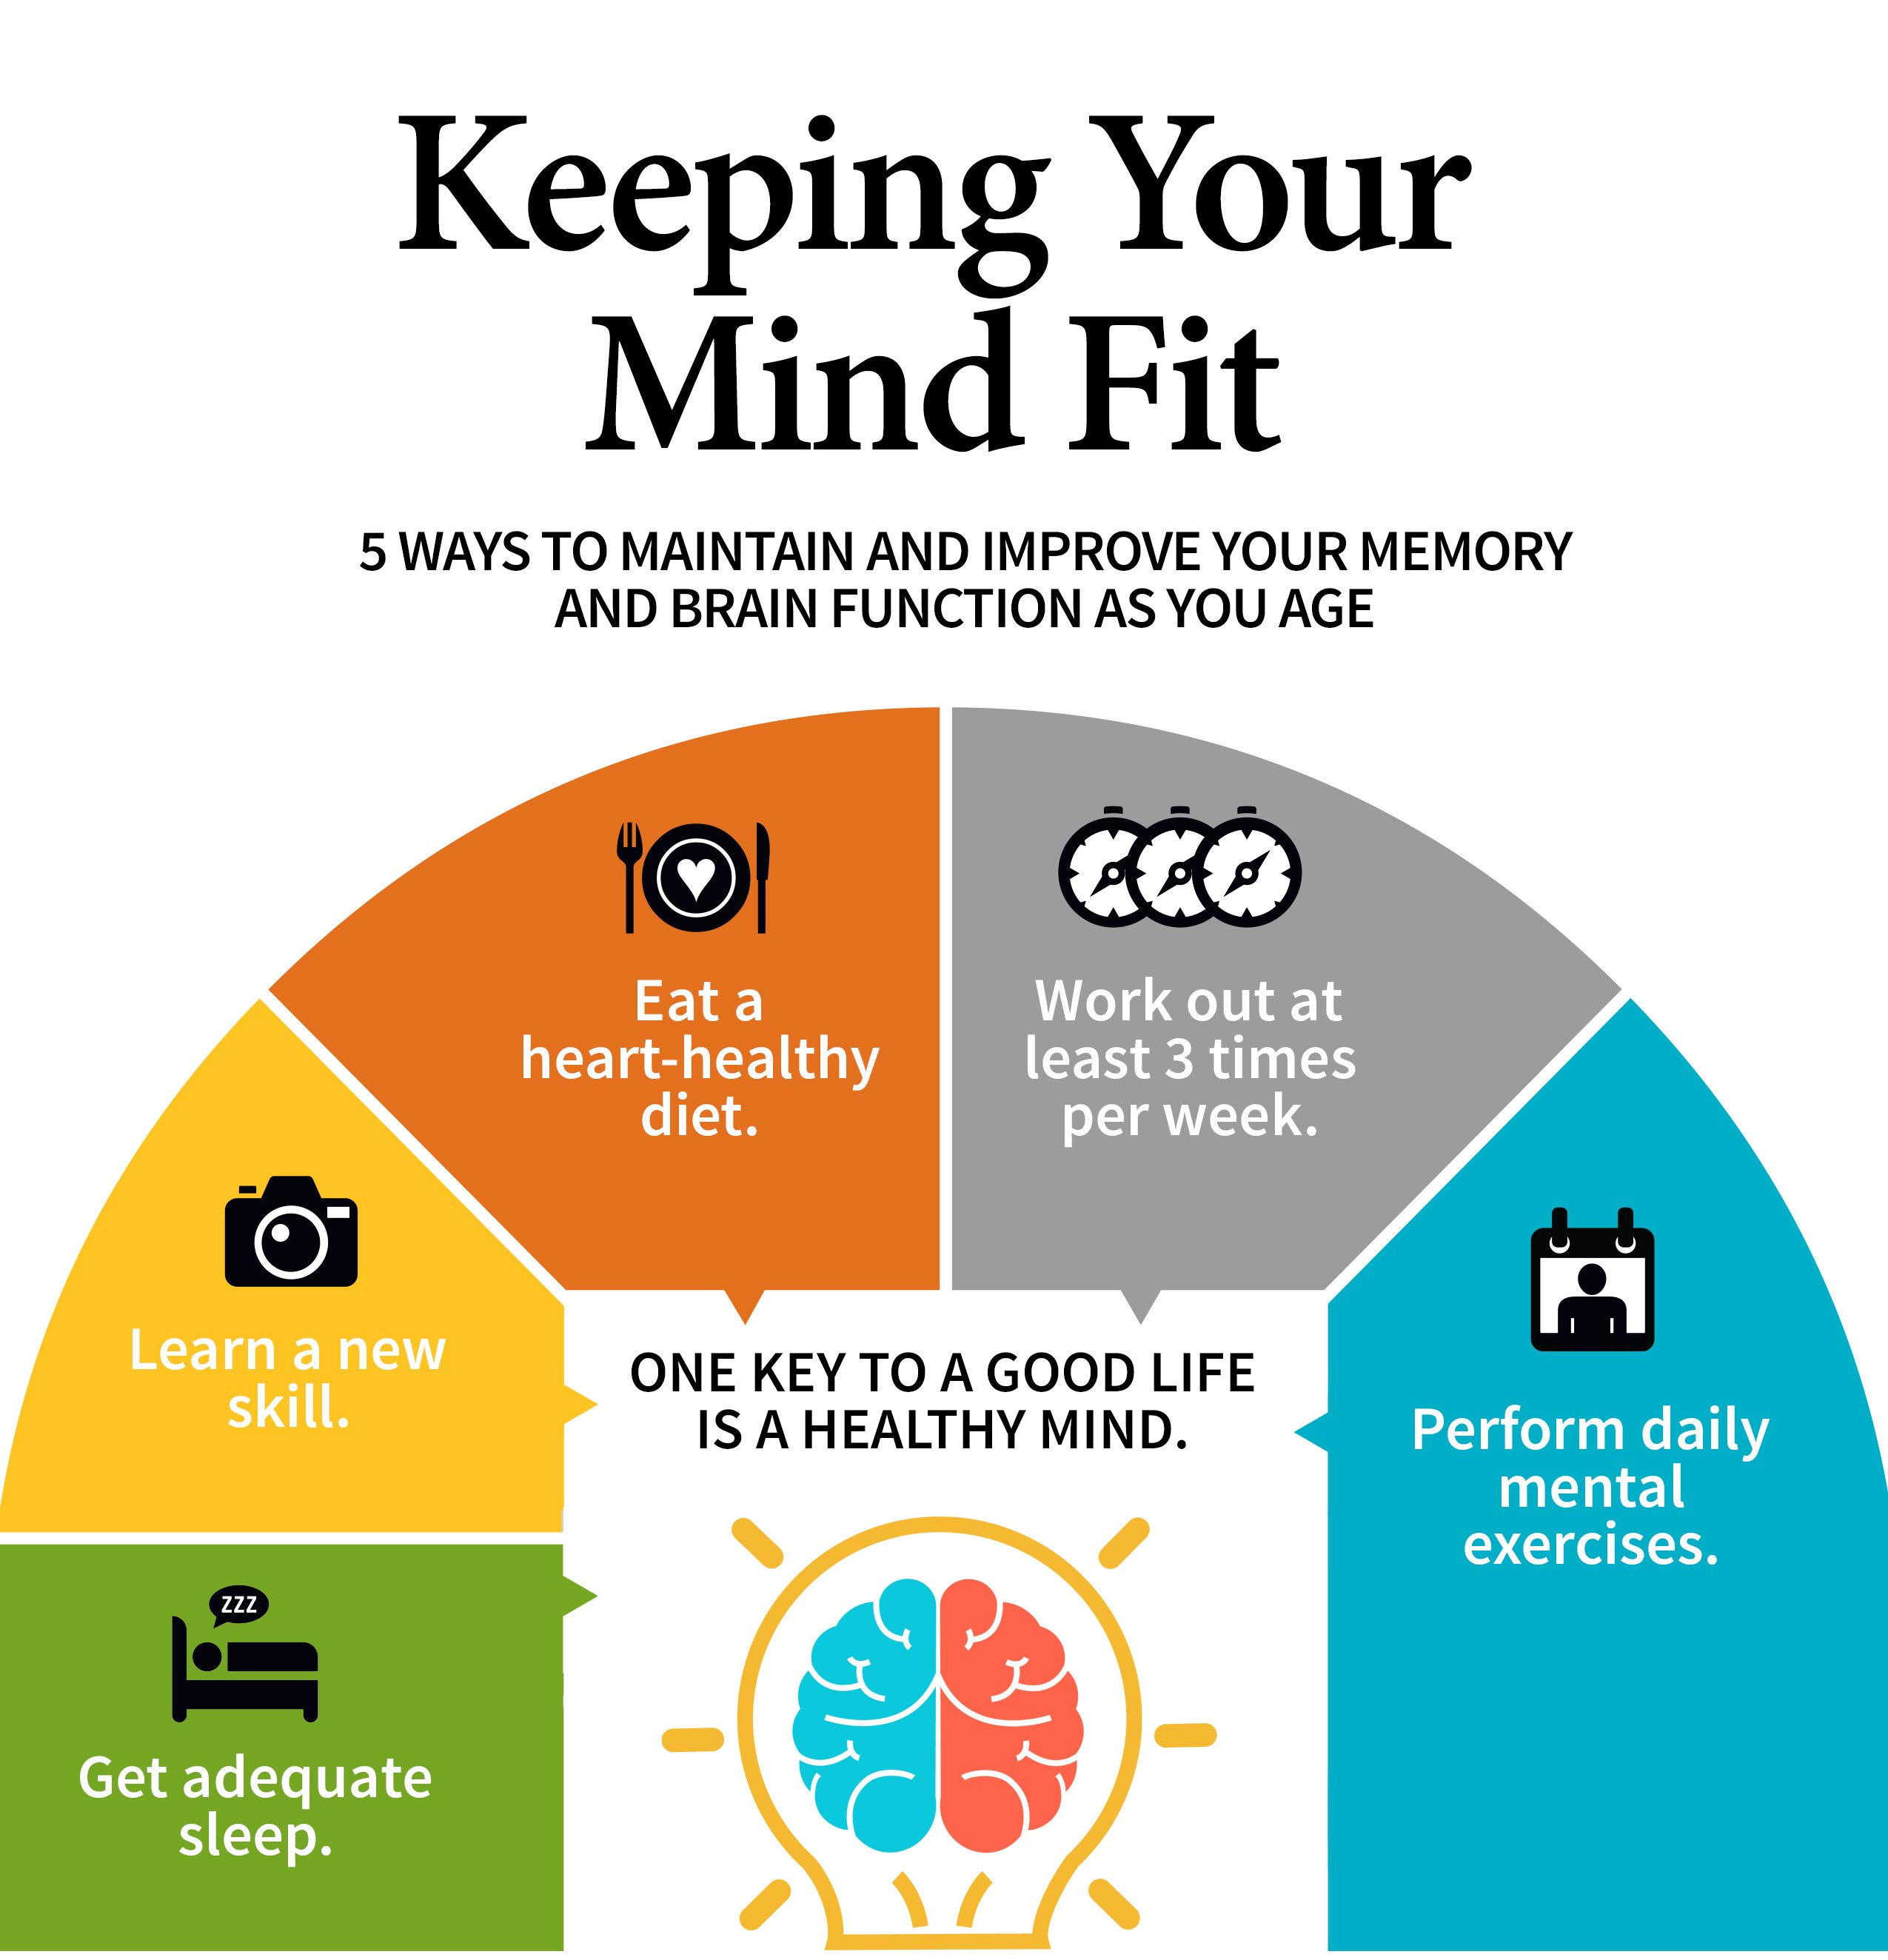 Keeping you mind fit infographic